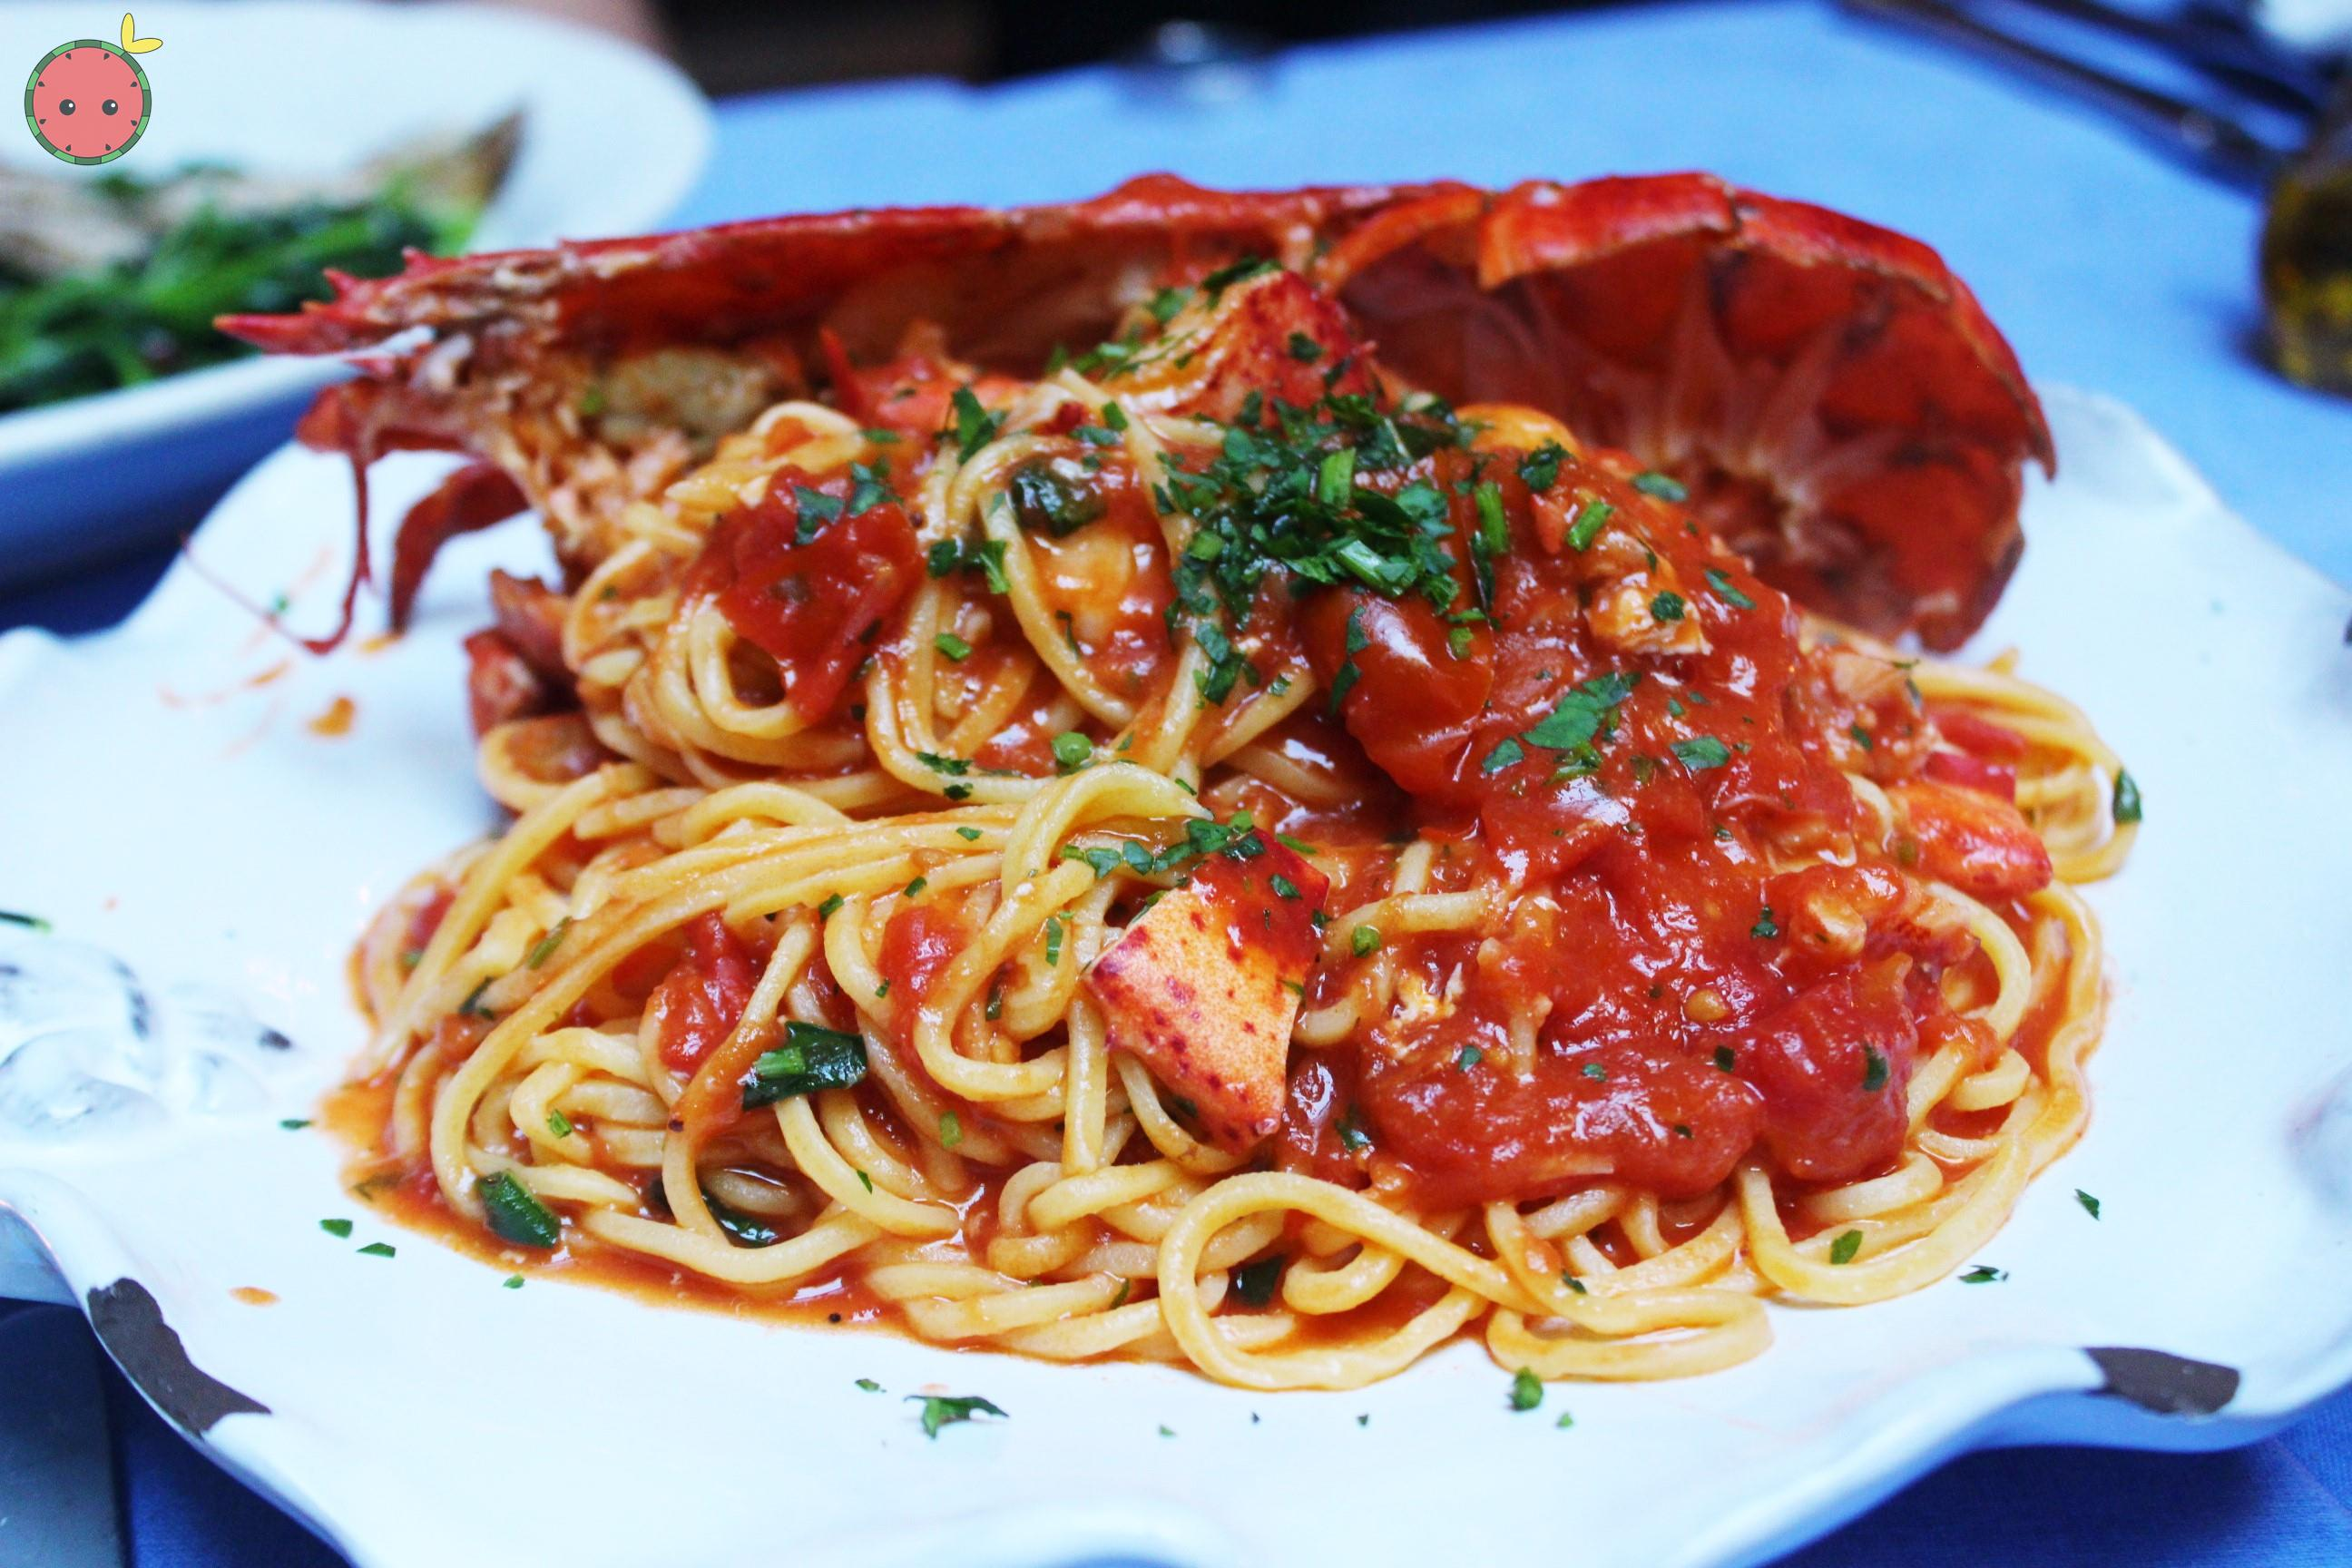 Spaghetti all'Astice - Half Maine lobster with homemade spaghetti in a sauce of lobster, cherry toma